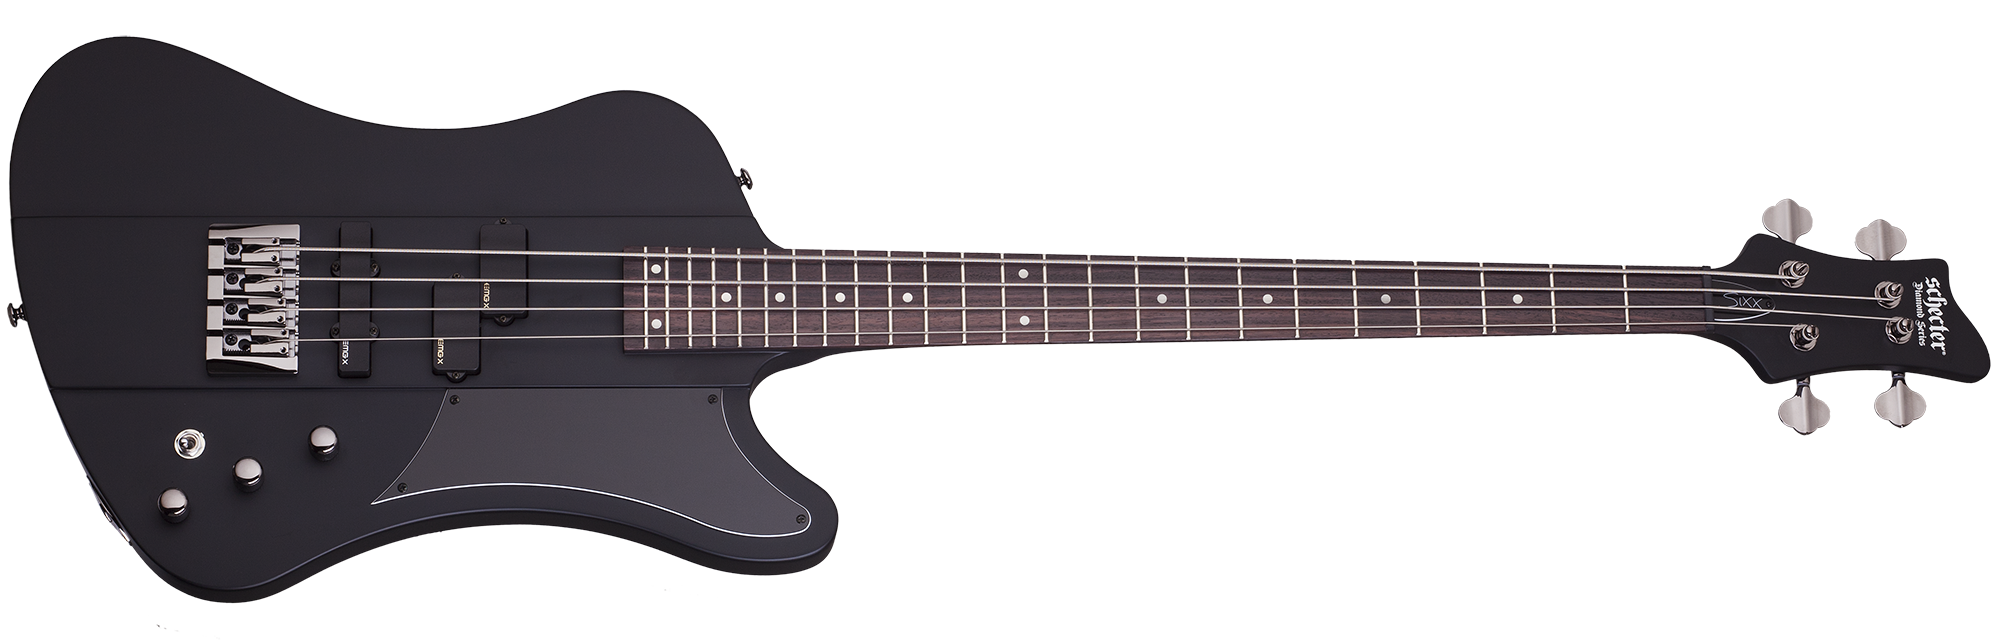 Schecter Sixx Bass Satin Black (SBK) SKU #210